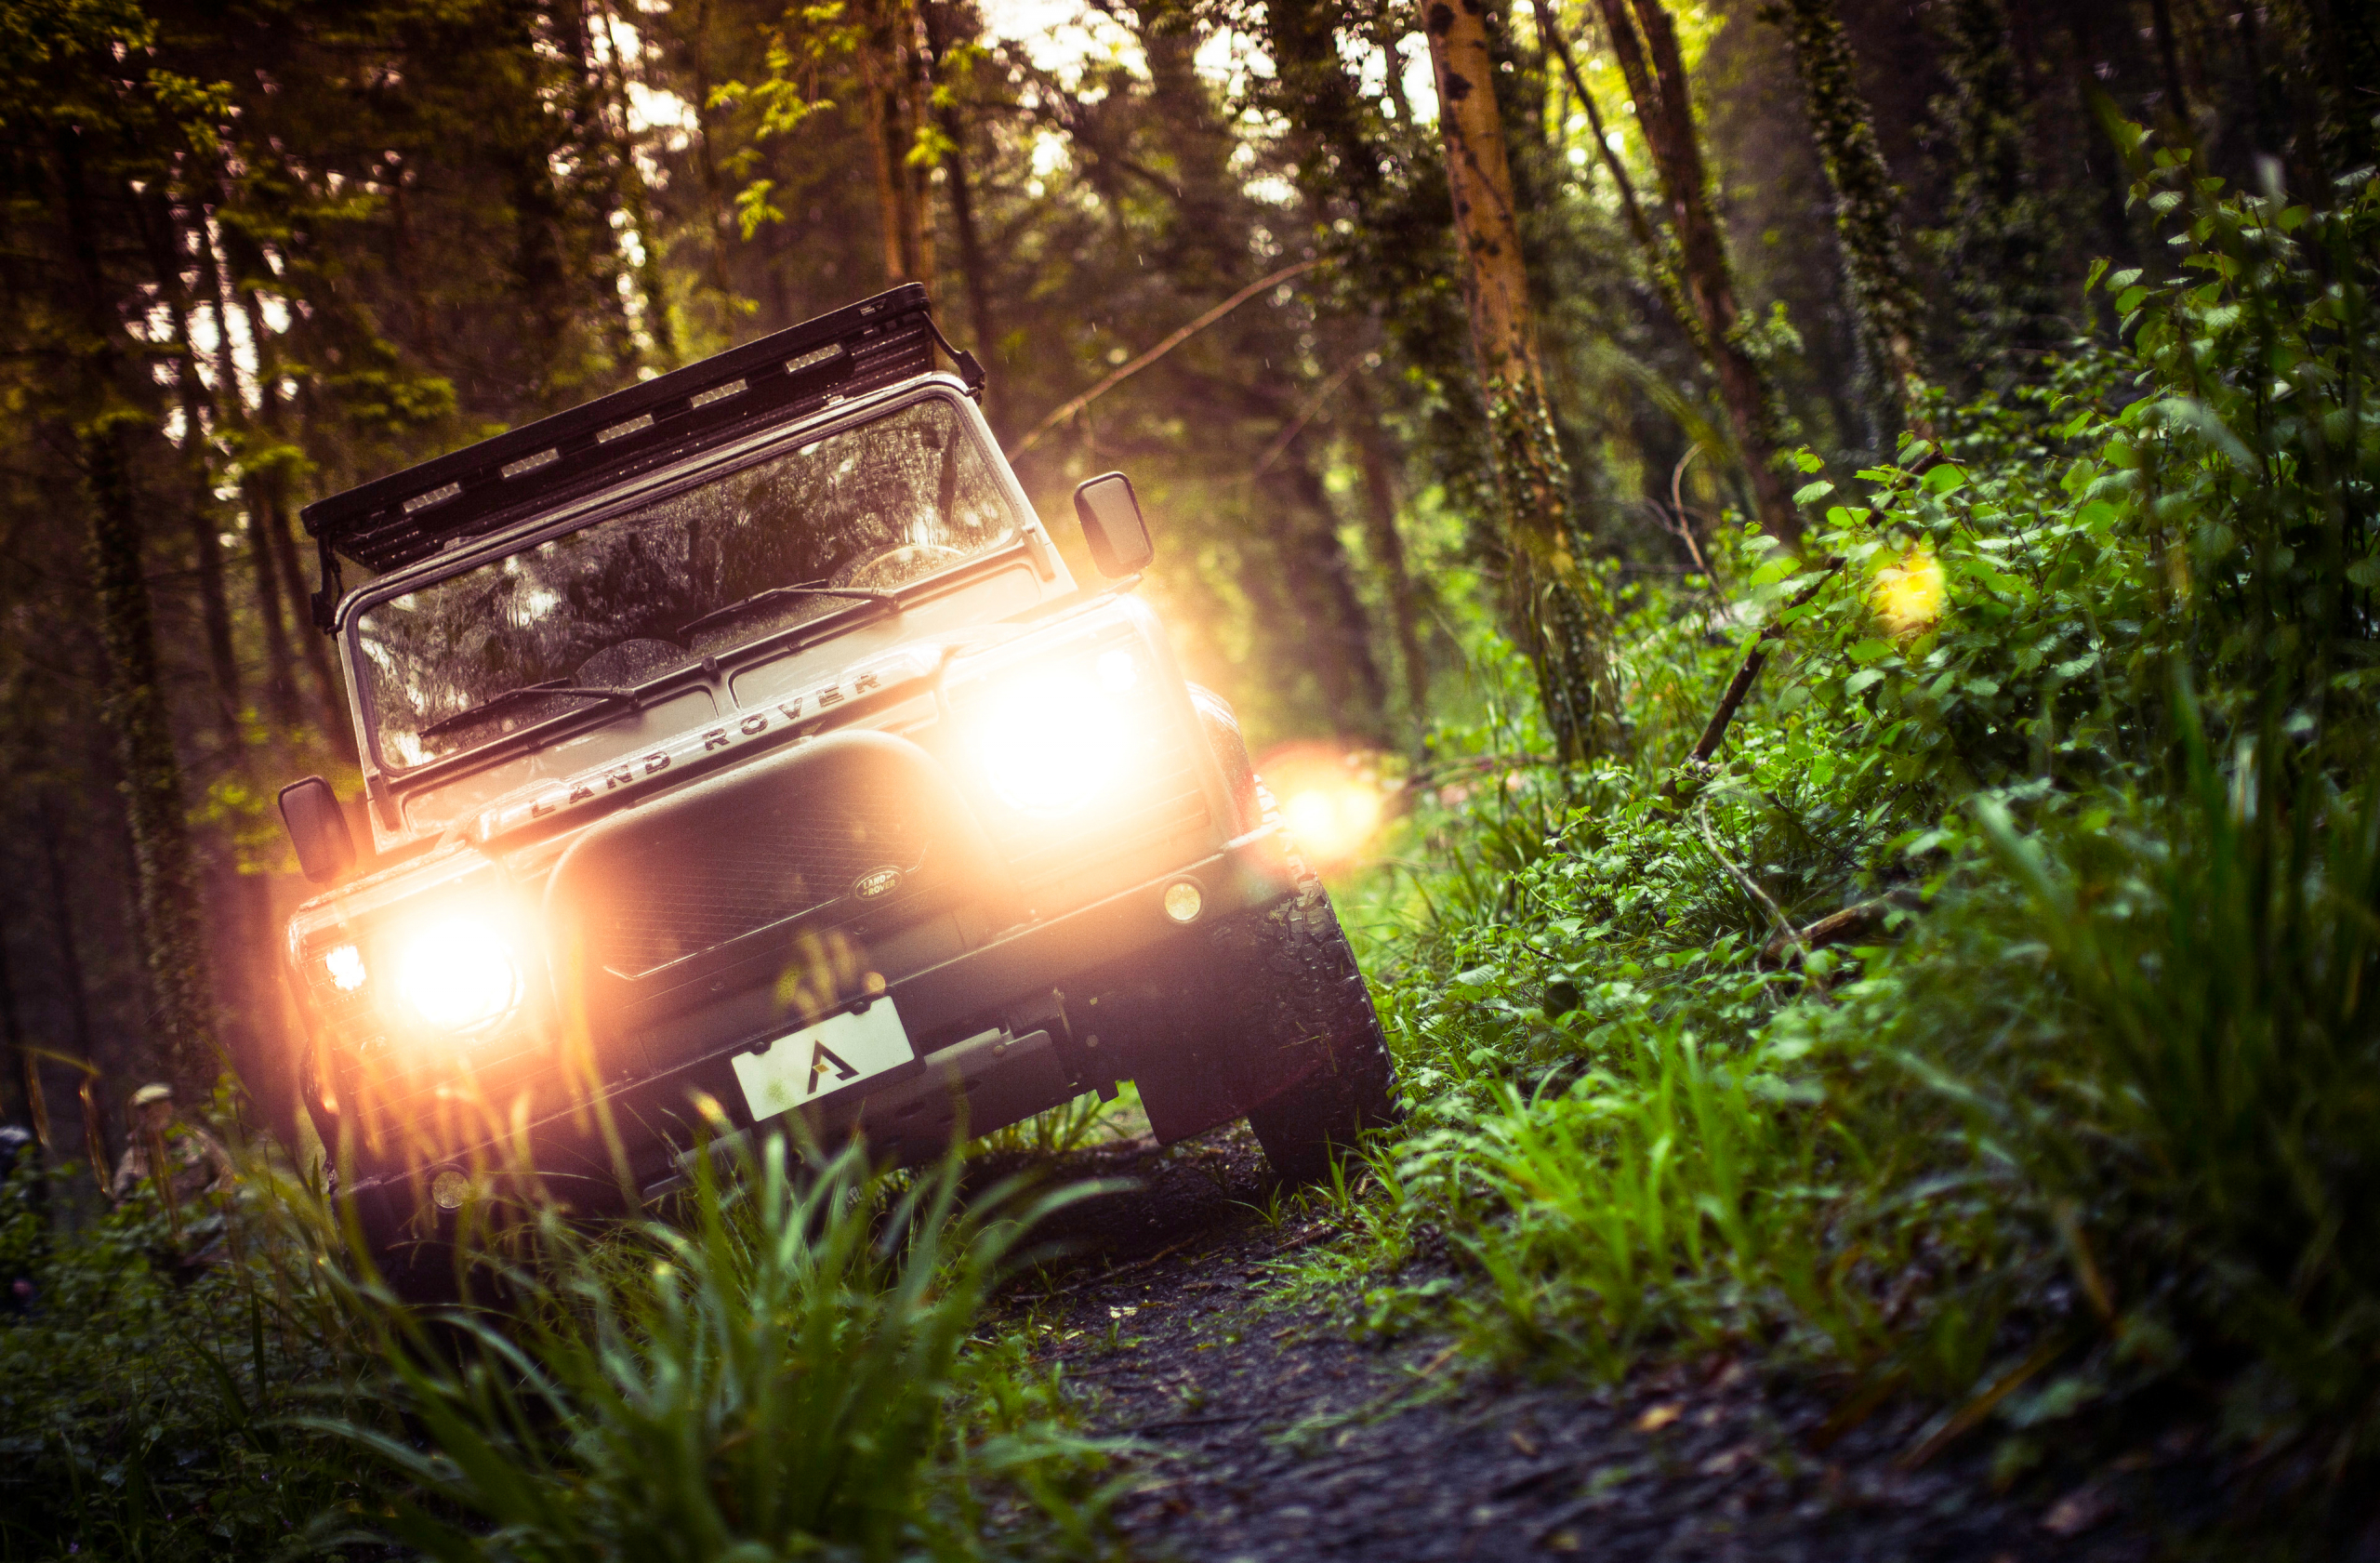 Arkonik Boulder off-road